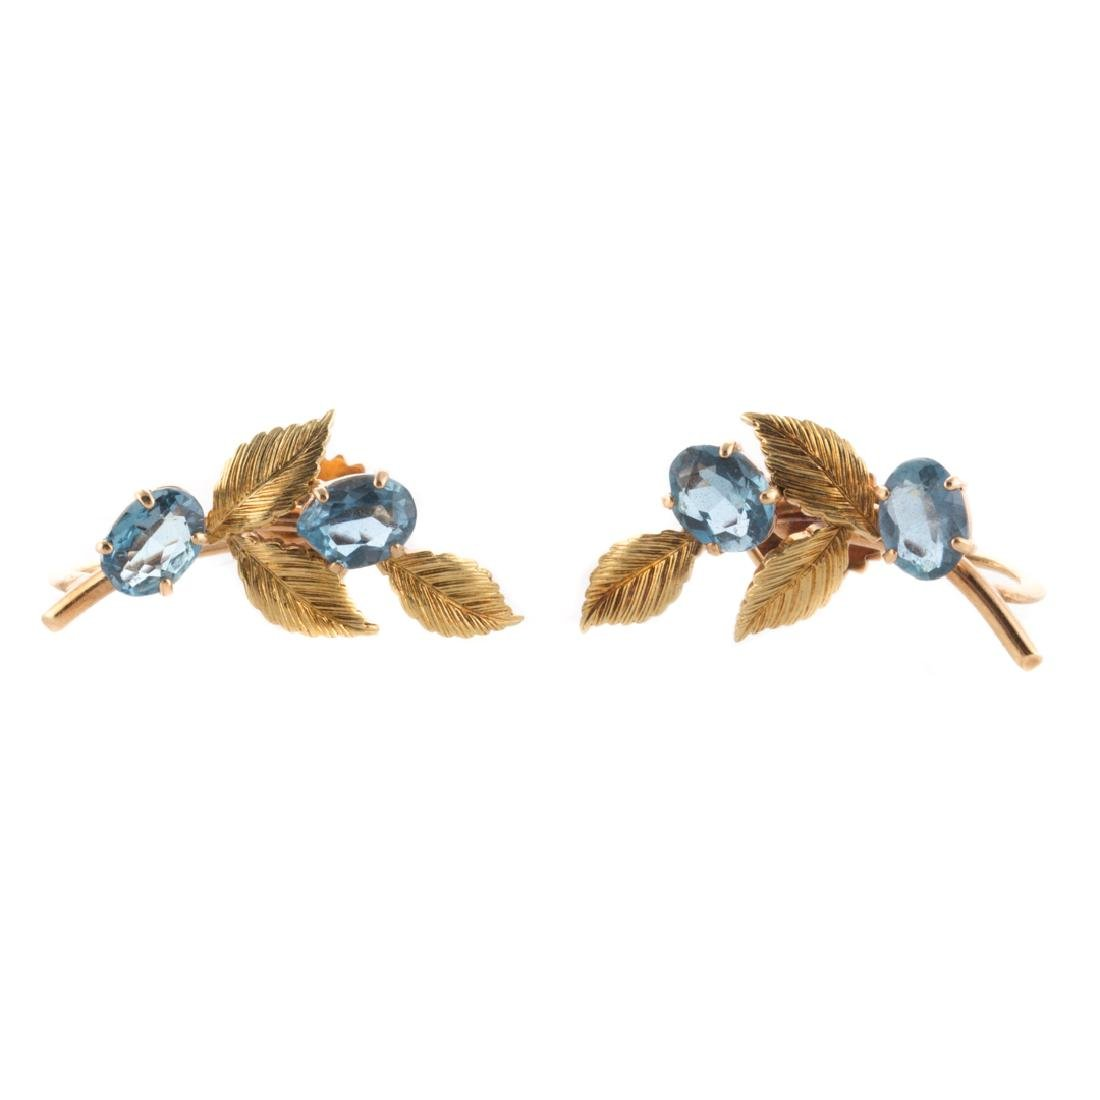 A Lady's Aquamarine Earring & Brooch Set in Gold - 4